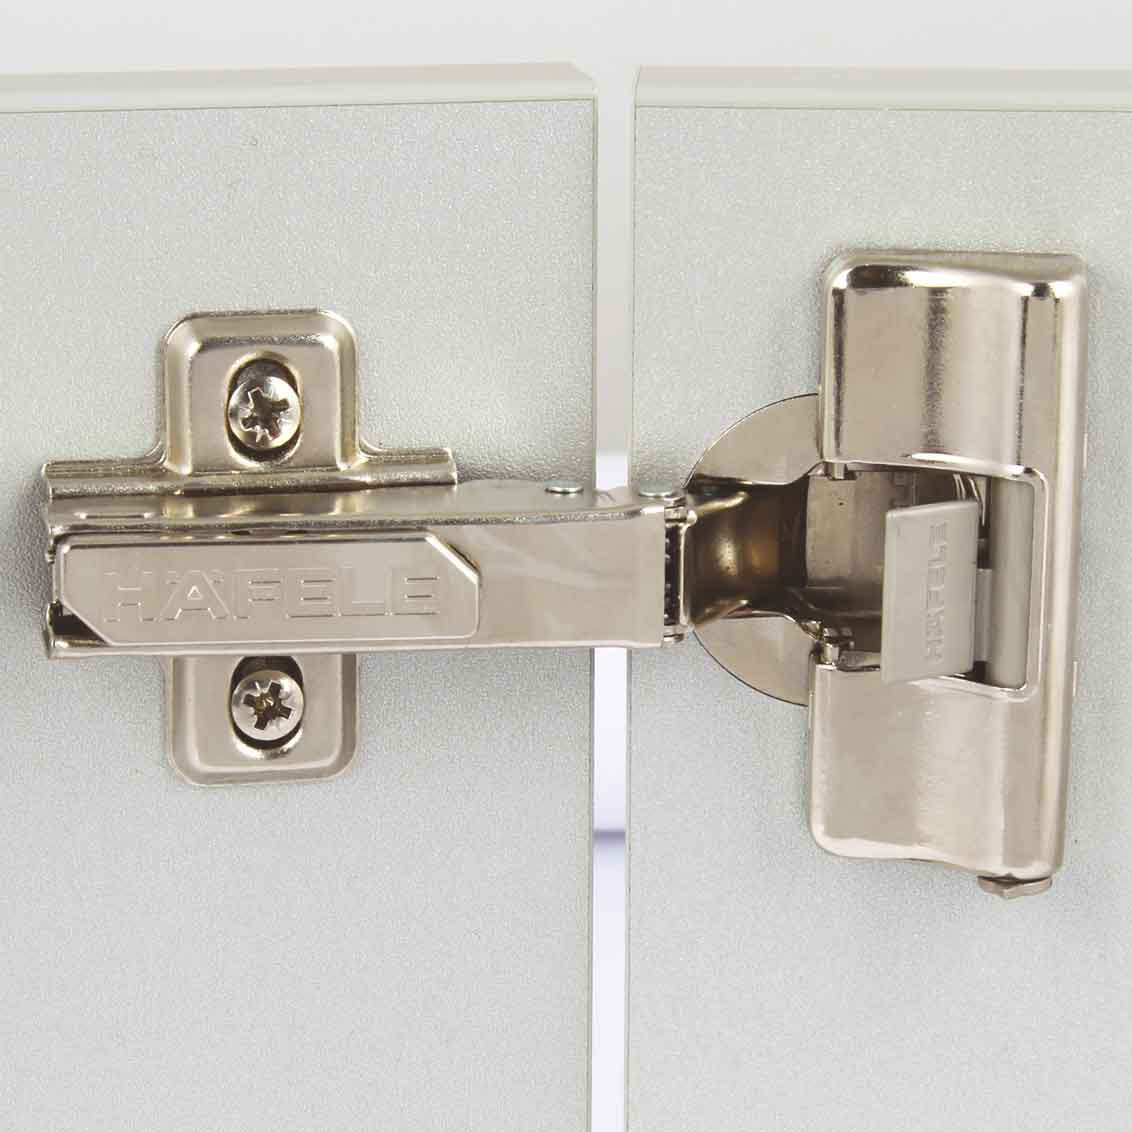 T20 Cabinet Hinges 32091